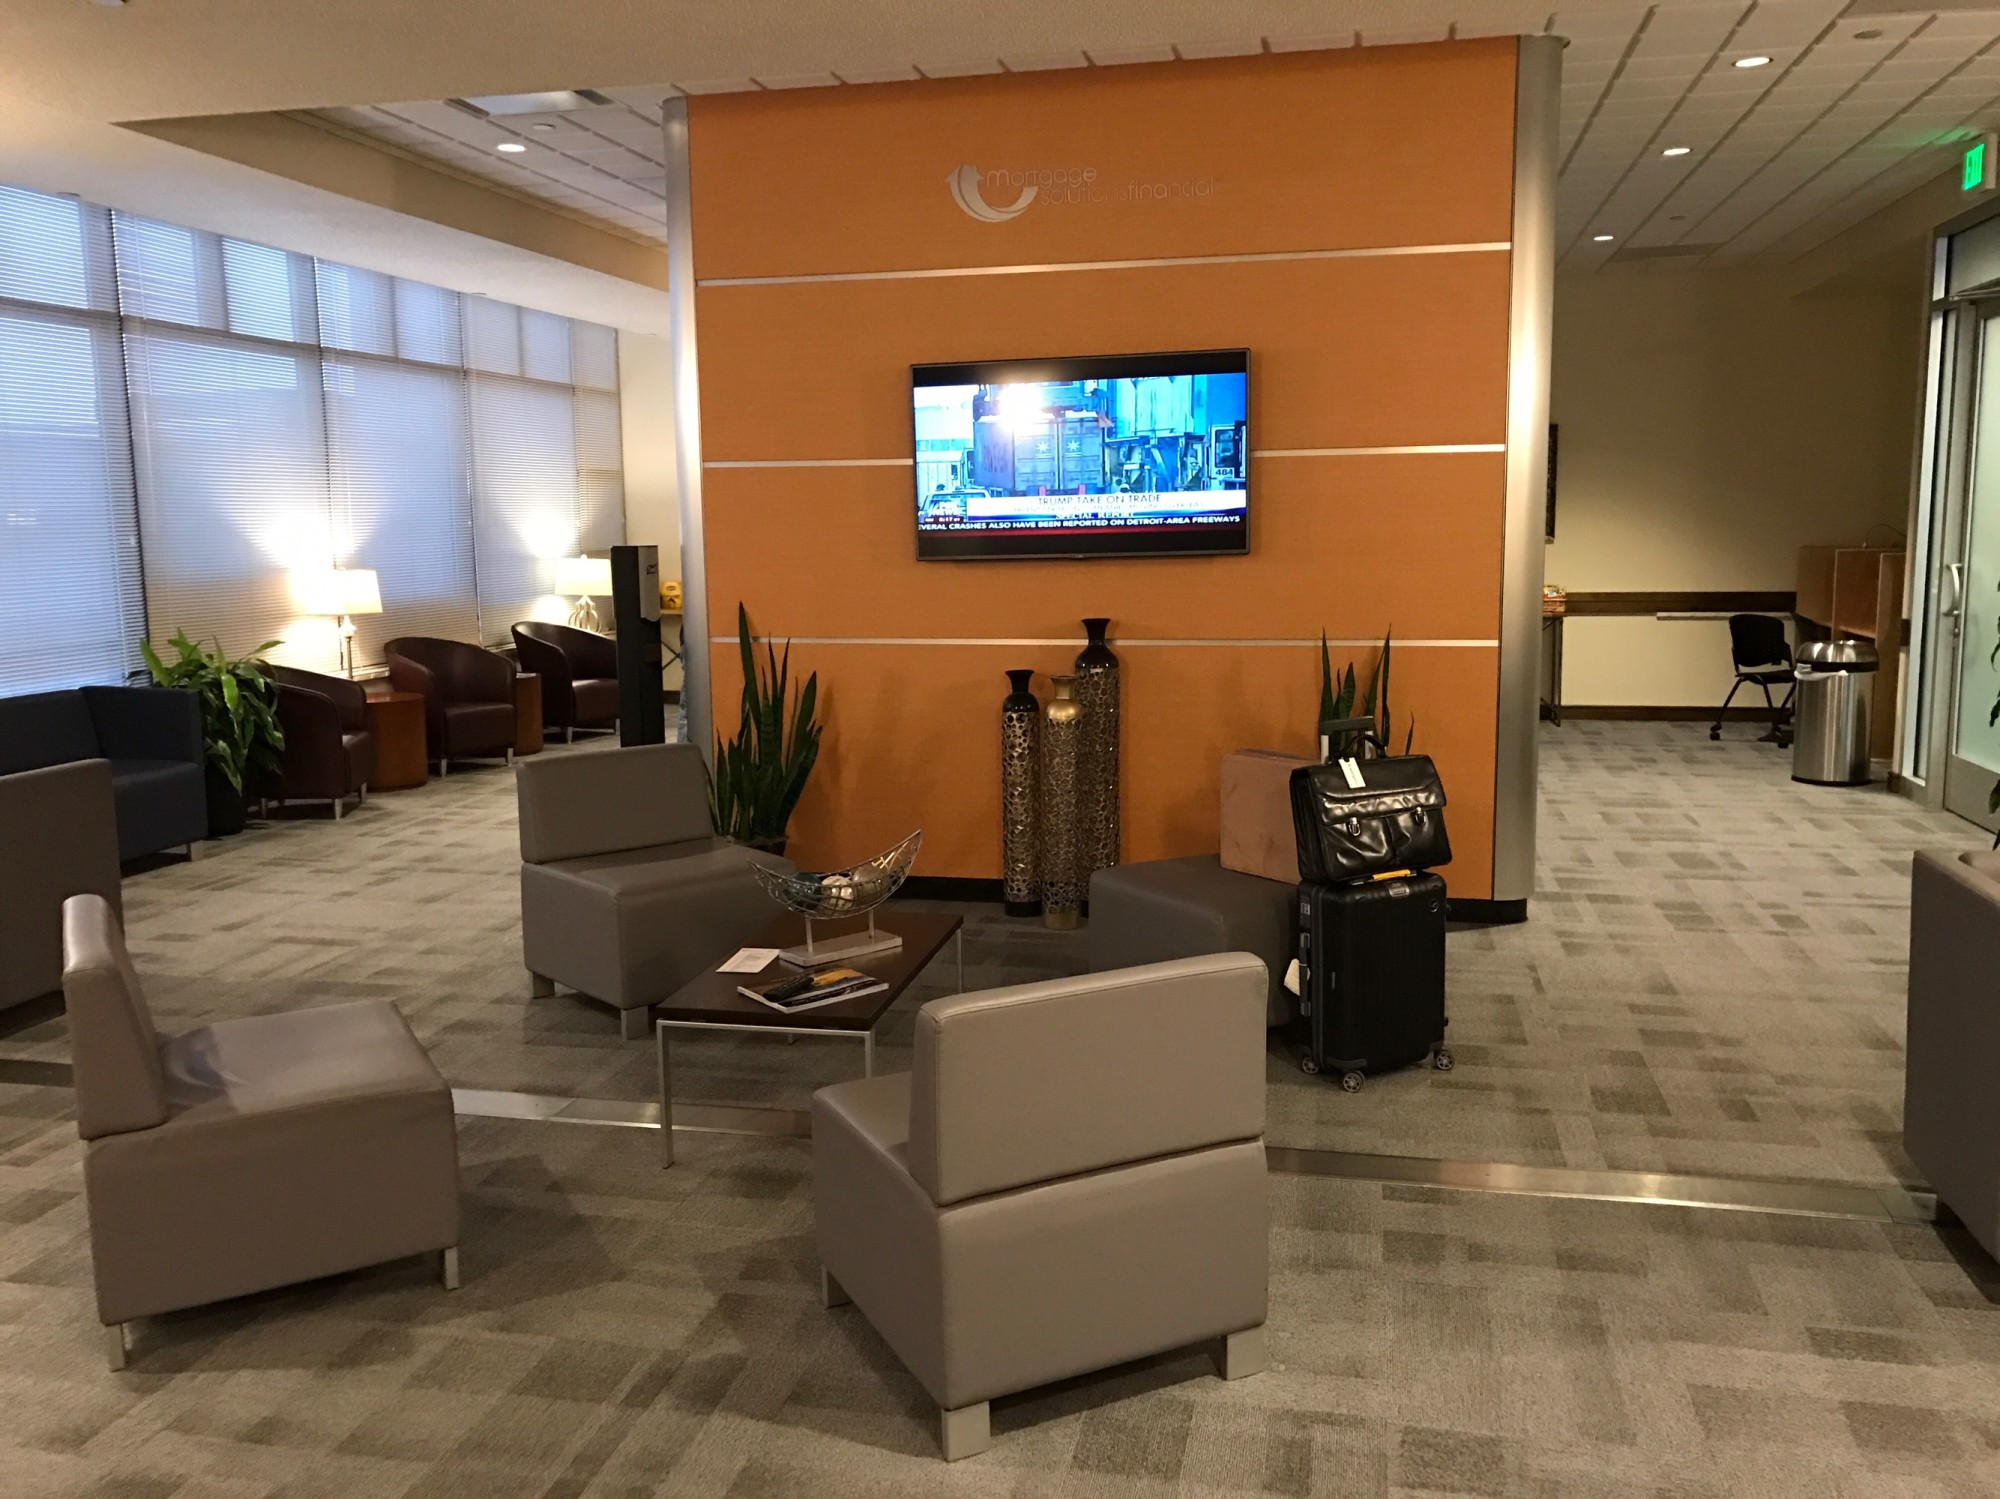 Cos Mortgage Solutions Financial Premier Lounge Reviews Photos  # Muebles Vaoli Leon